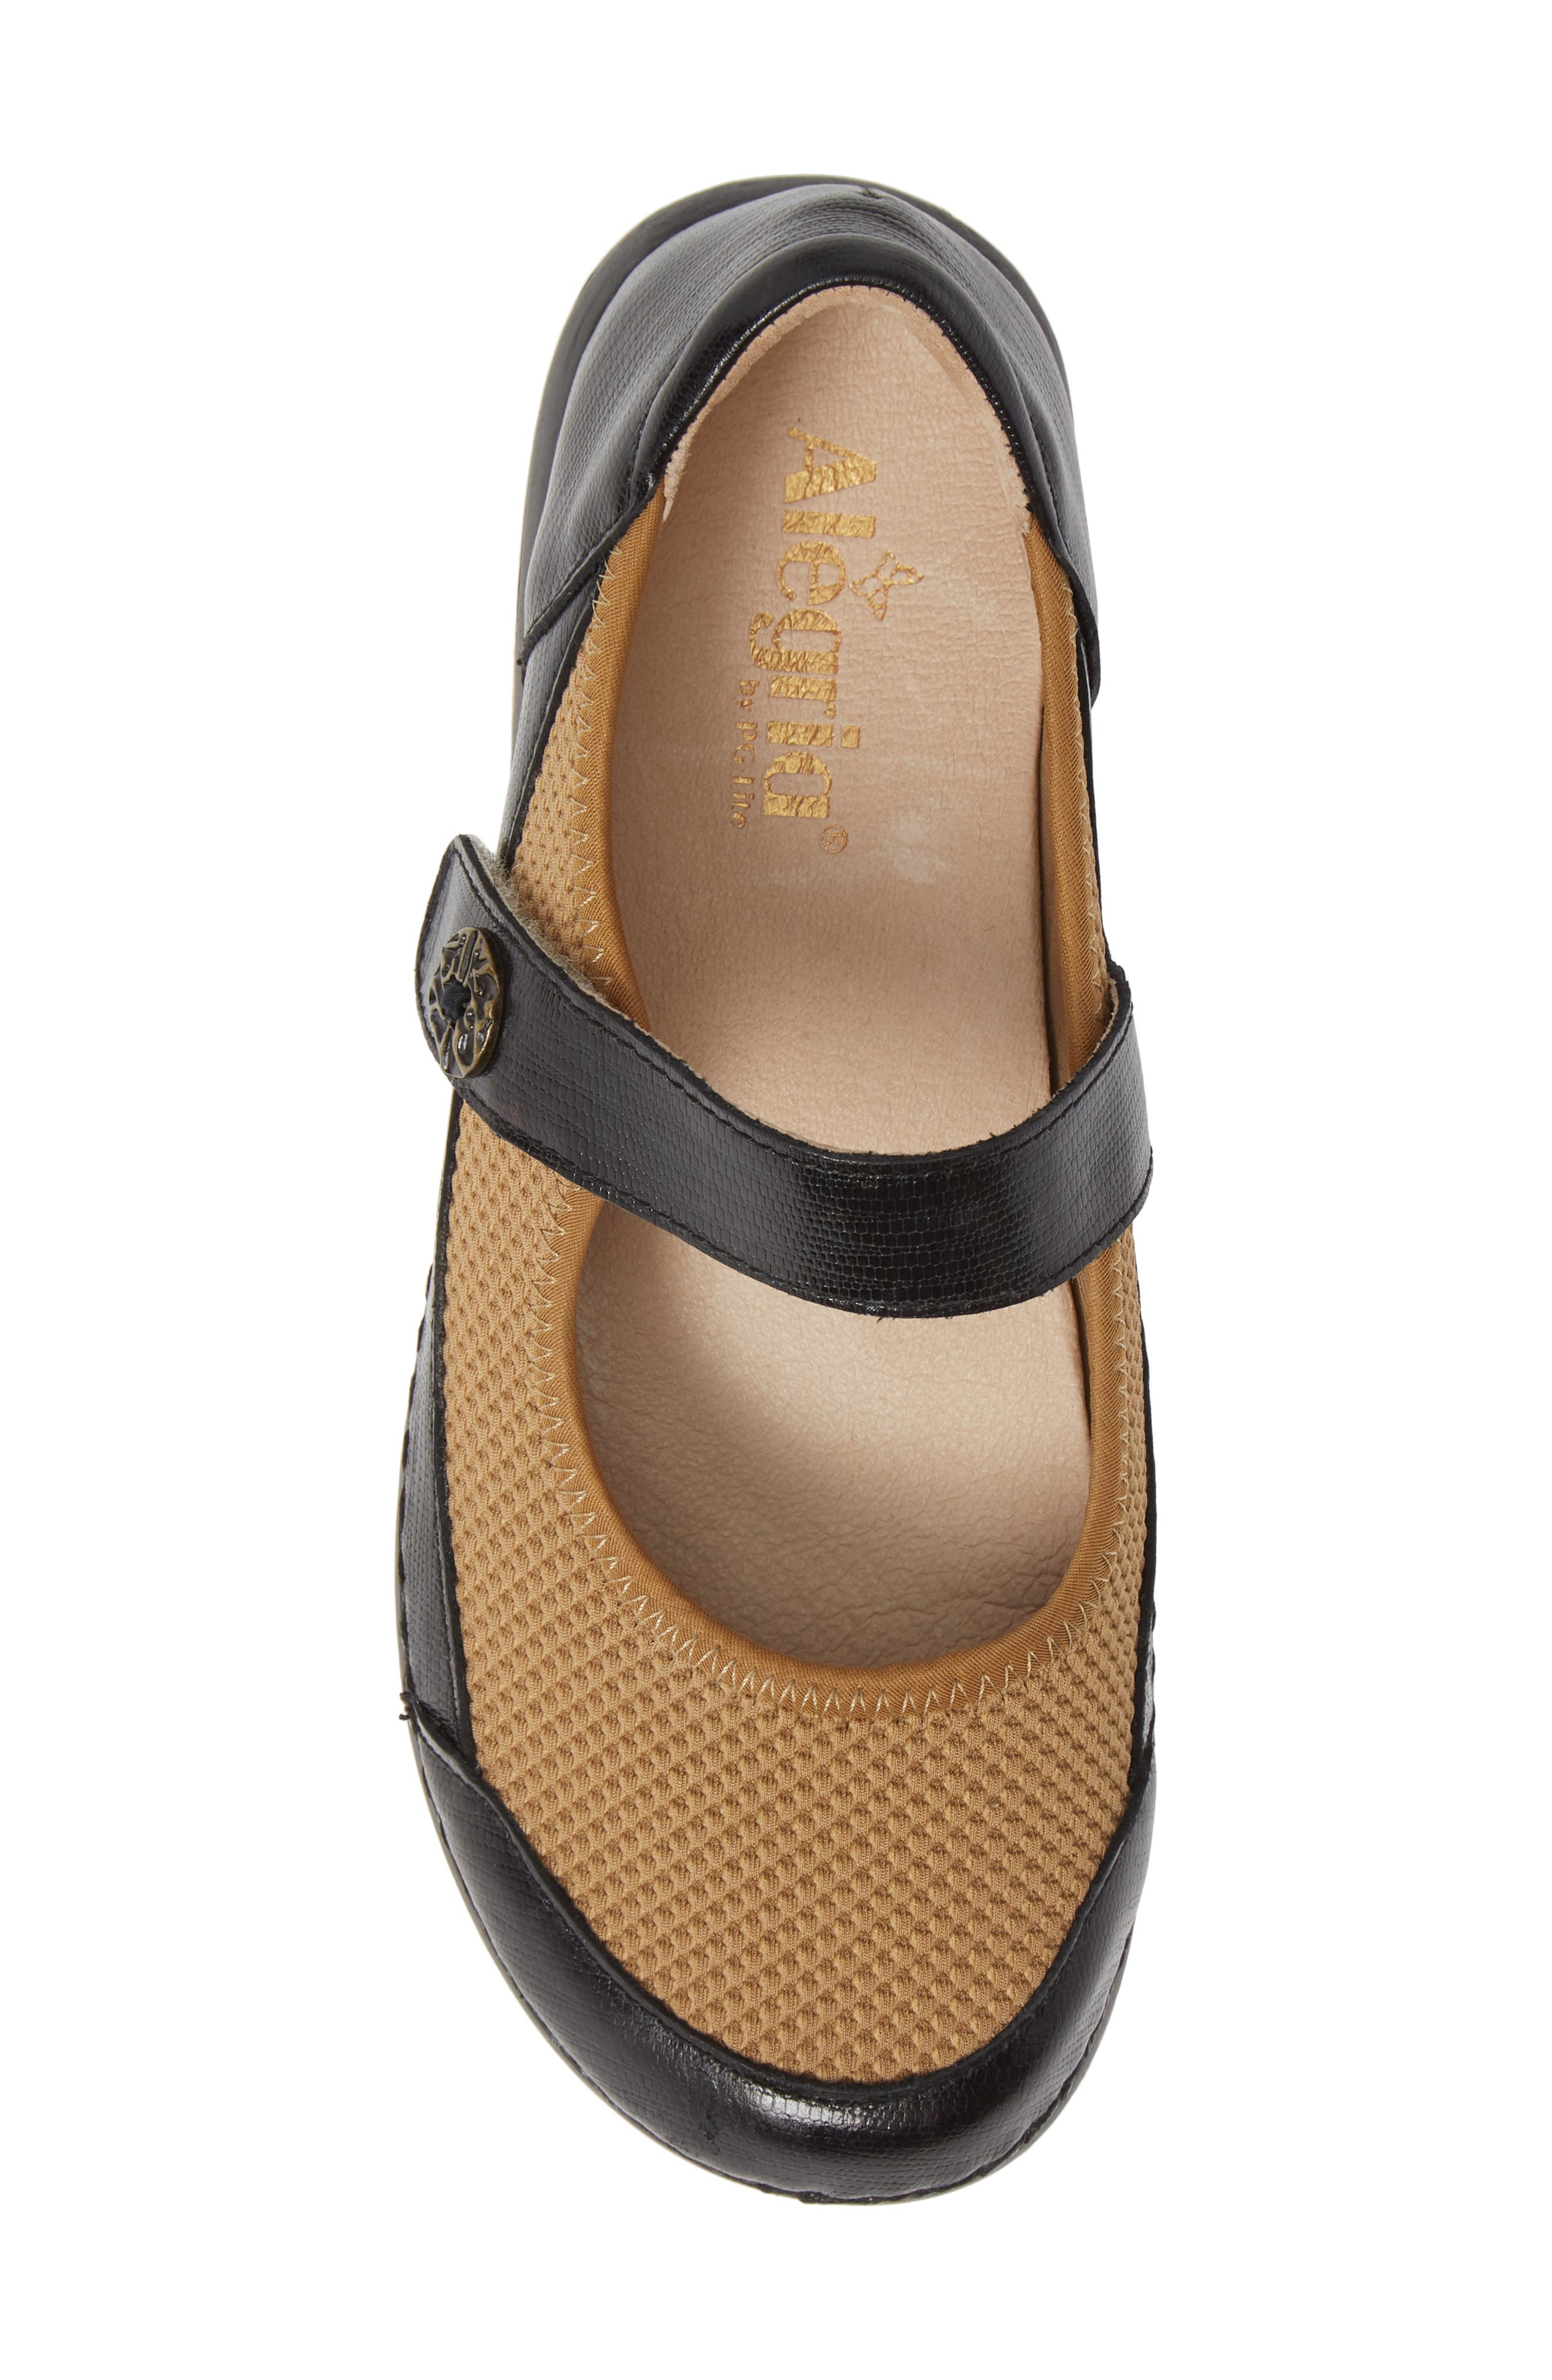 ALEGRIA, Gem Mary Jane Flat, Alternate thumbnail 5, color, TIDAL LEATHER